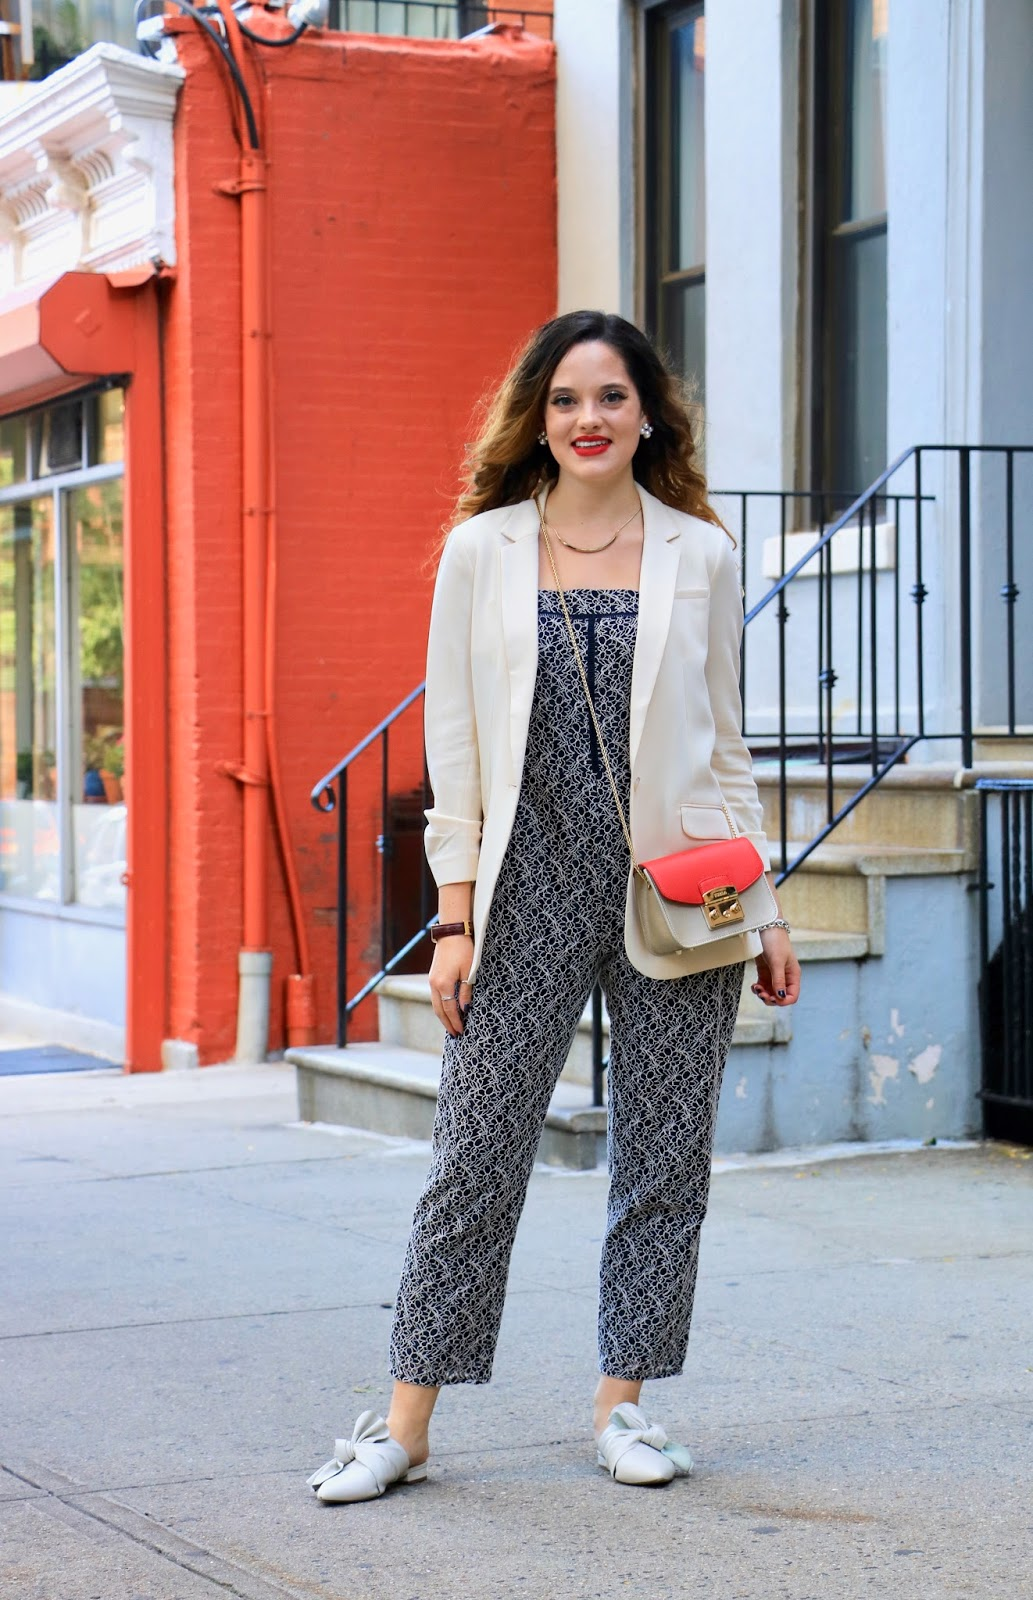 NYC fashion blogger Kathleen Harper in fall street style